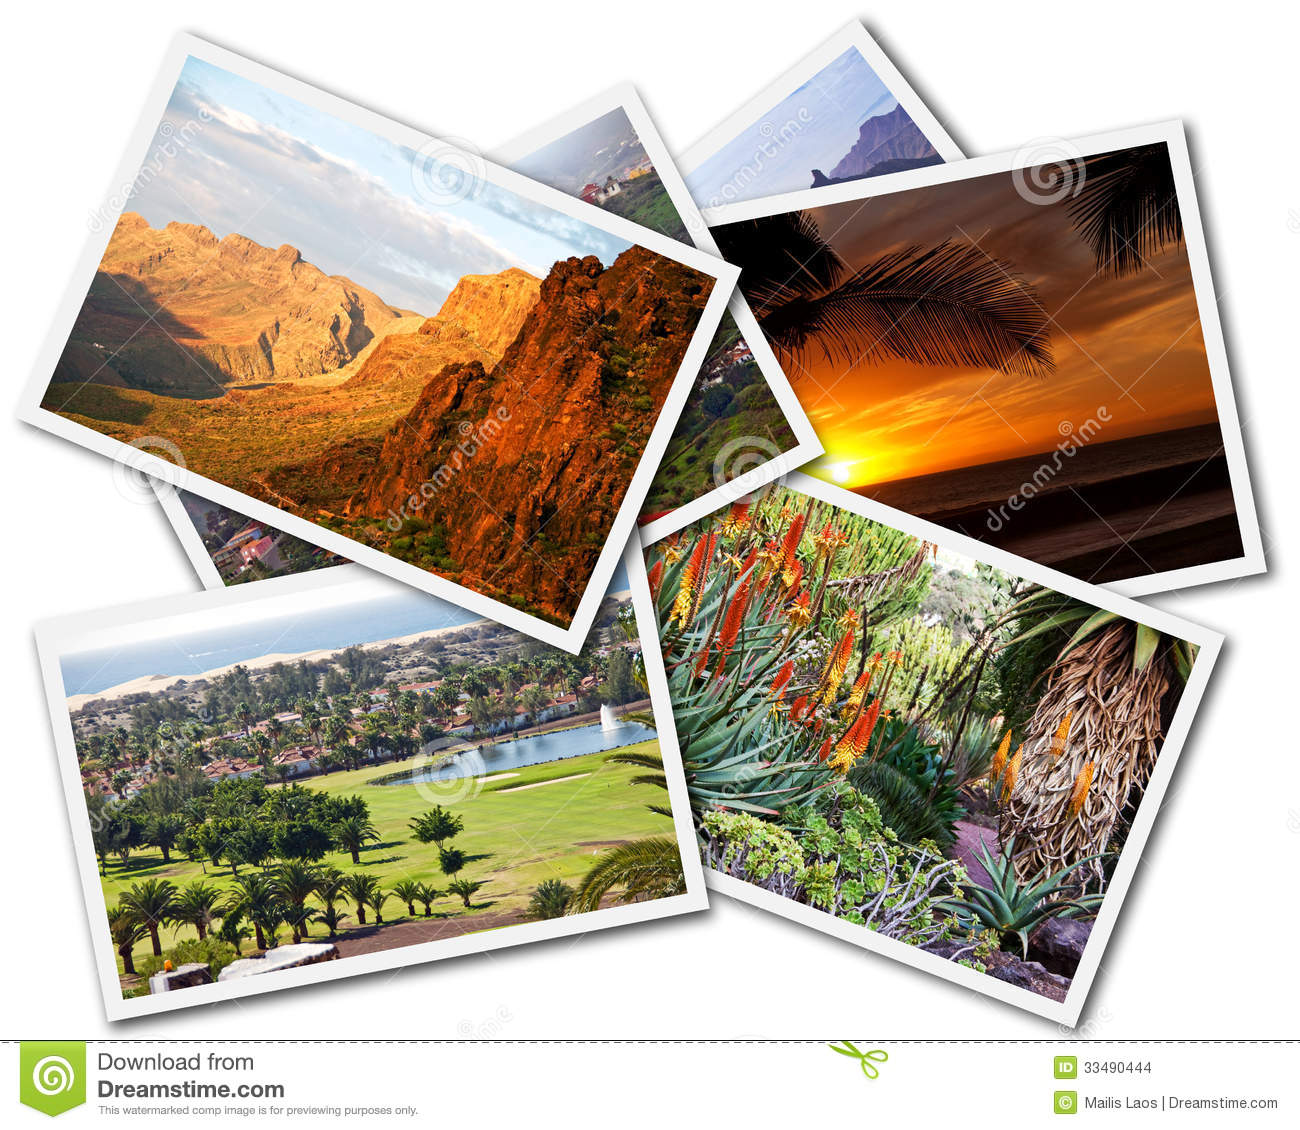 Download Gran Canaria Collage stock photo. Image of postcard, pictures - 33490444